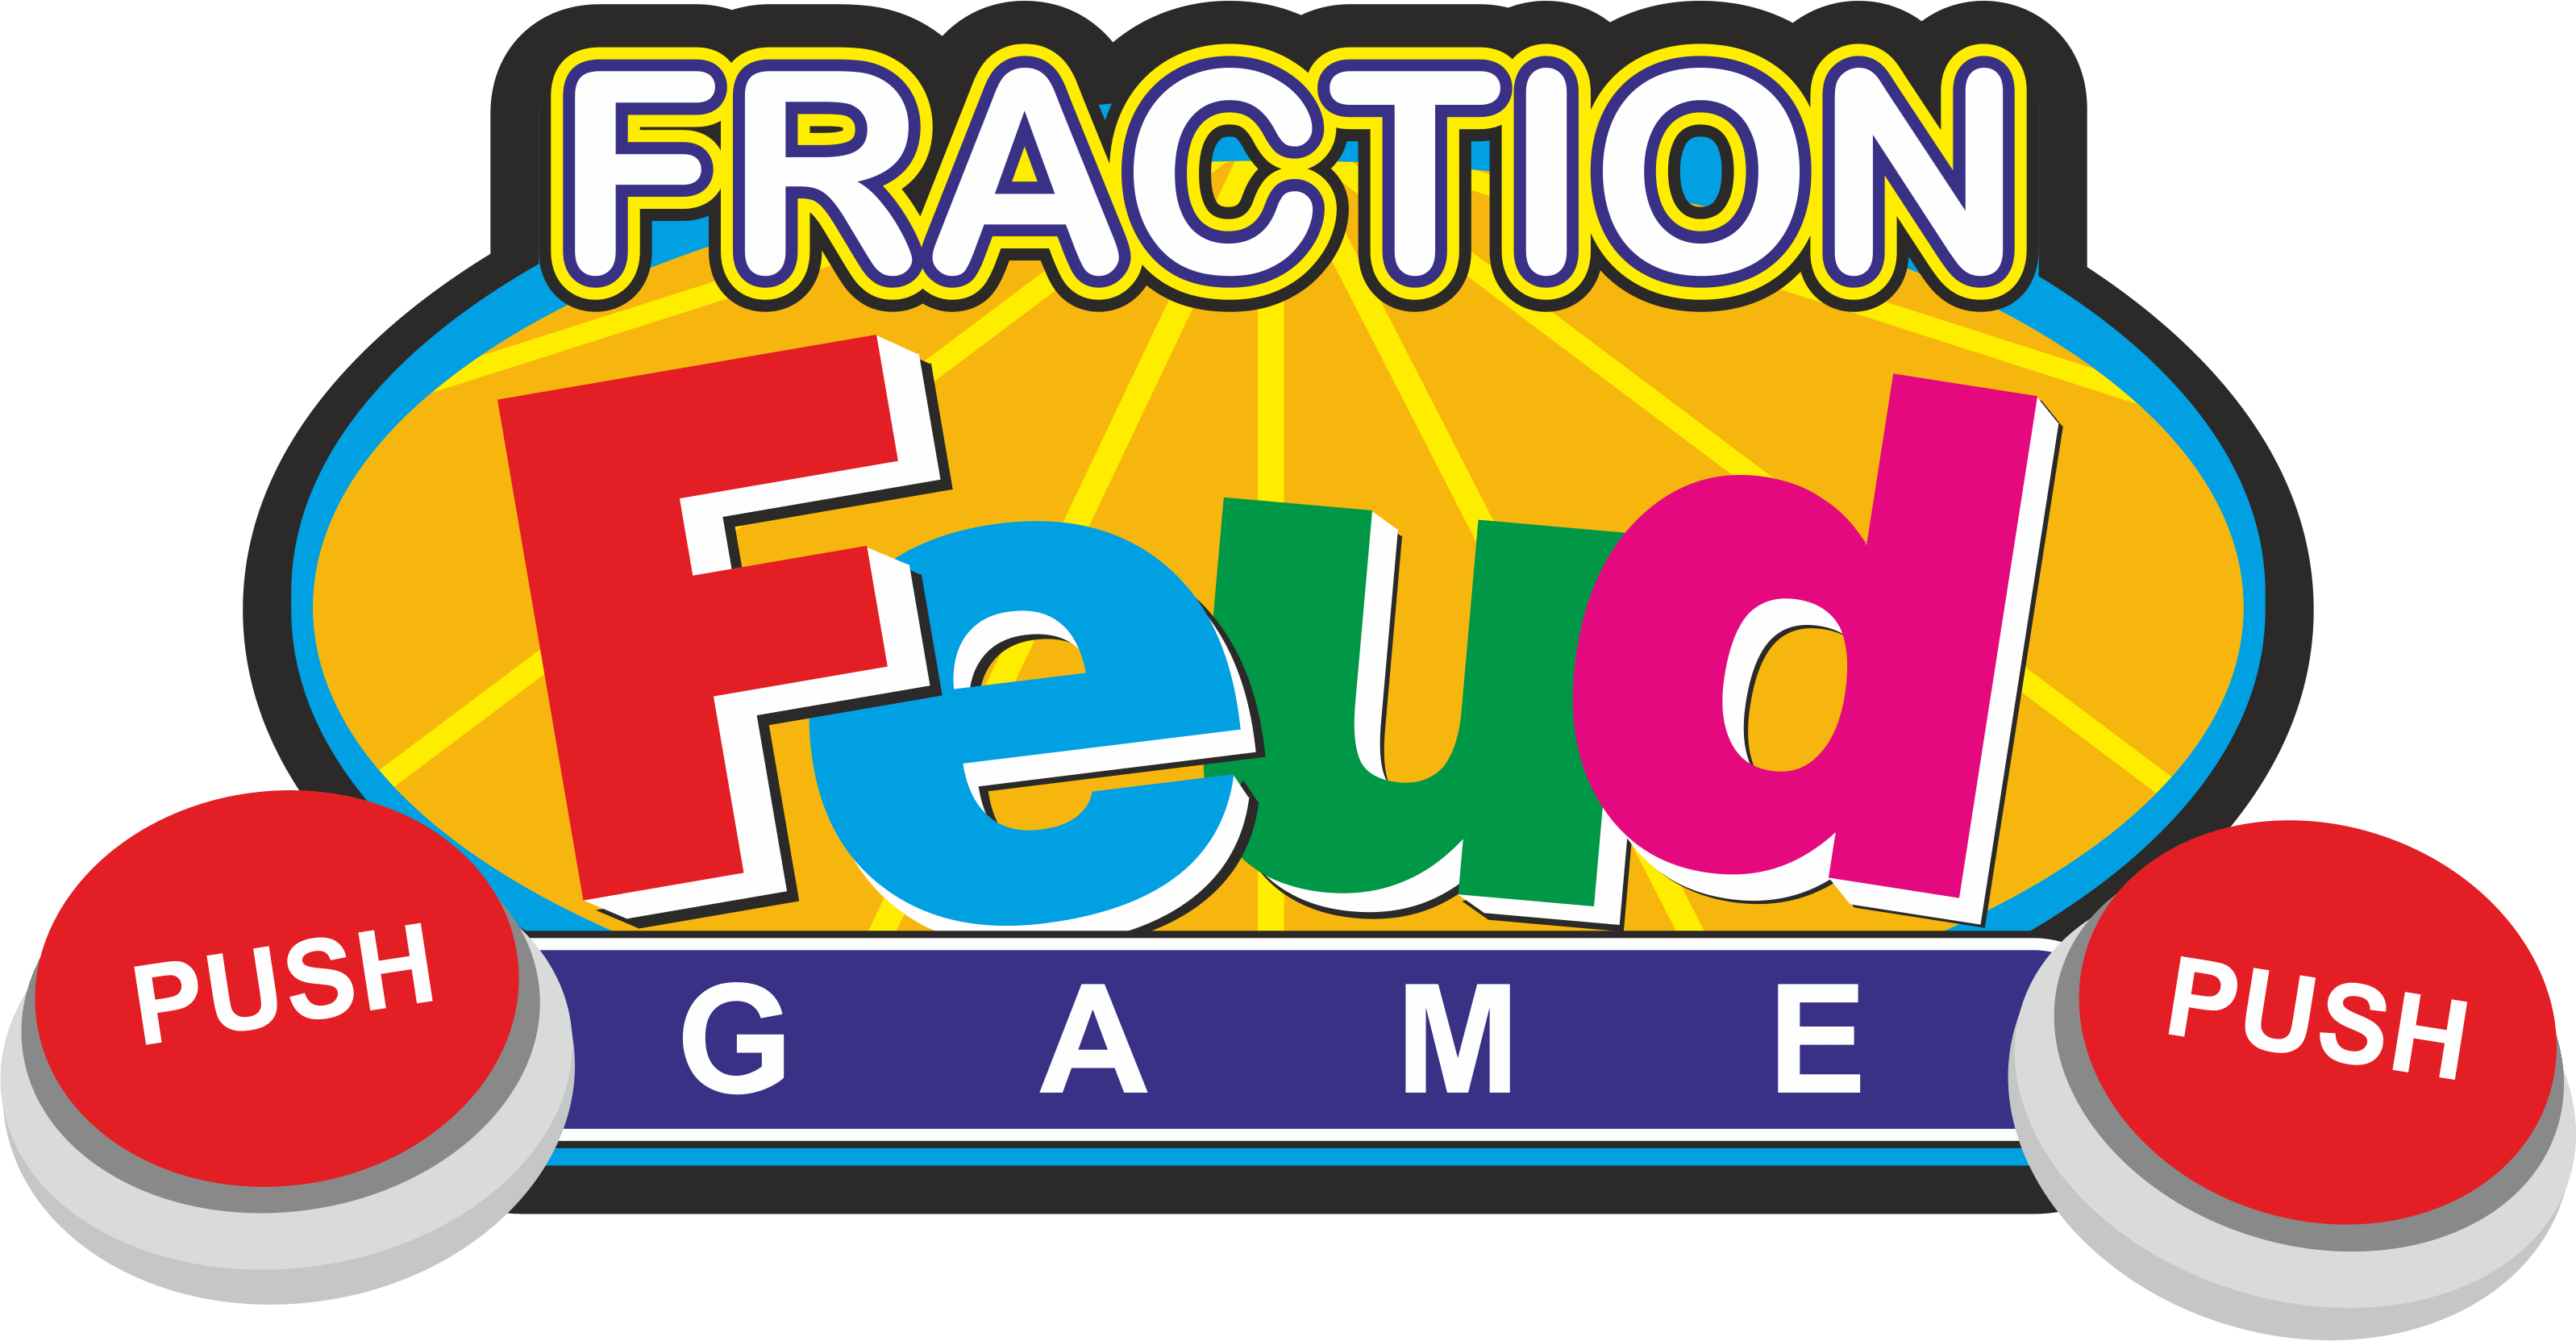 Feud comparing fractions game. Fraction clipart everyday use